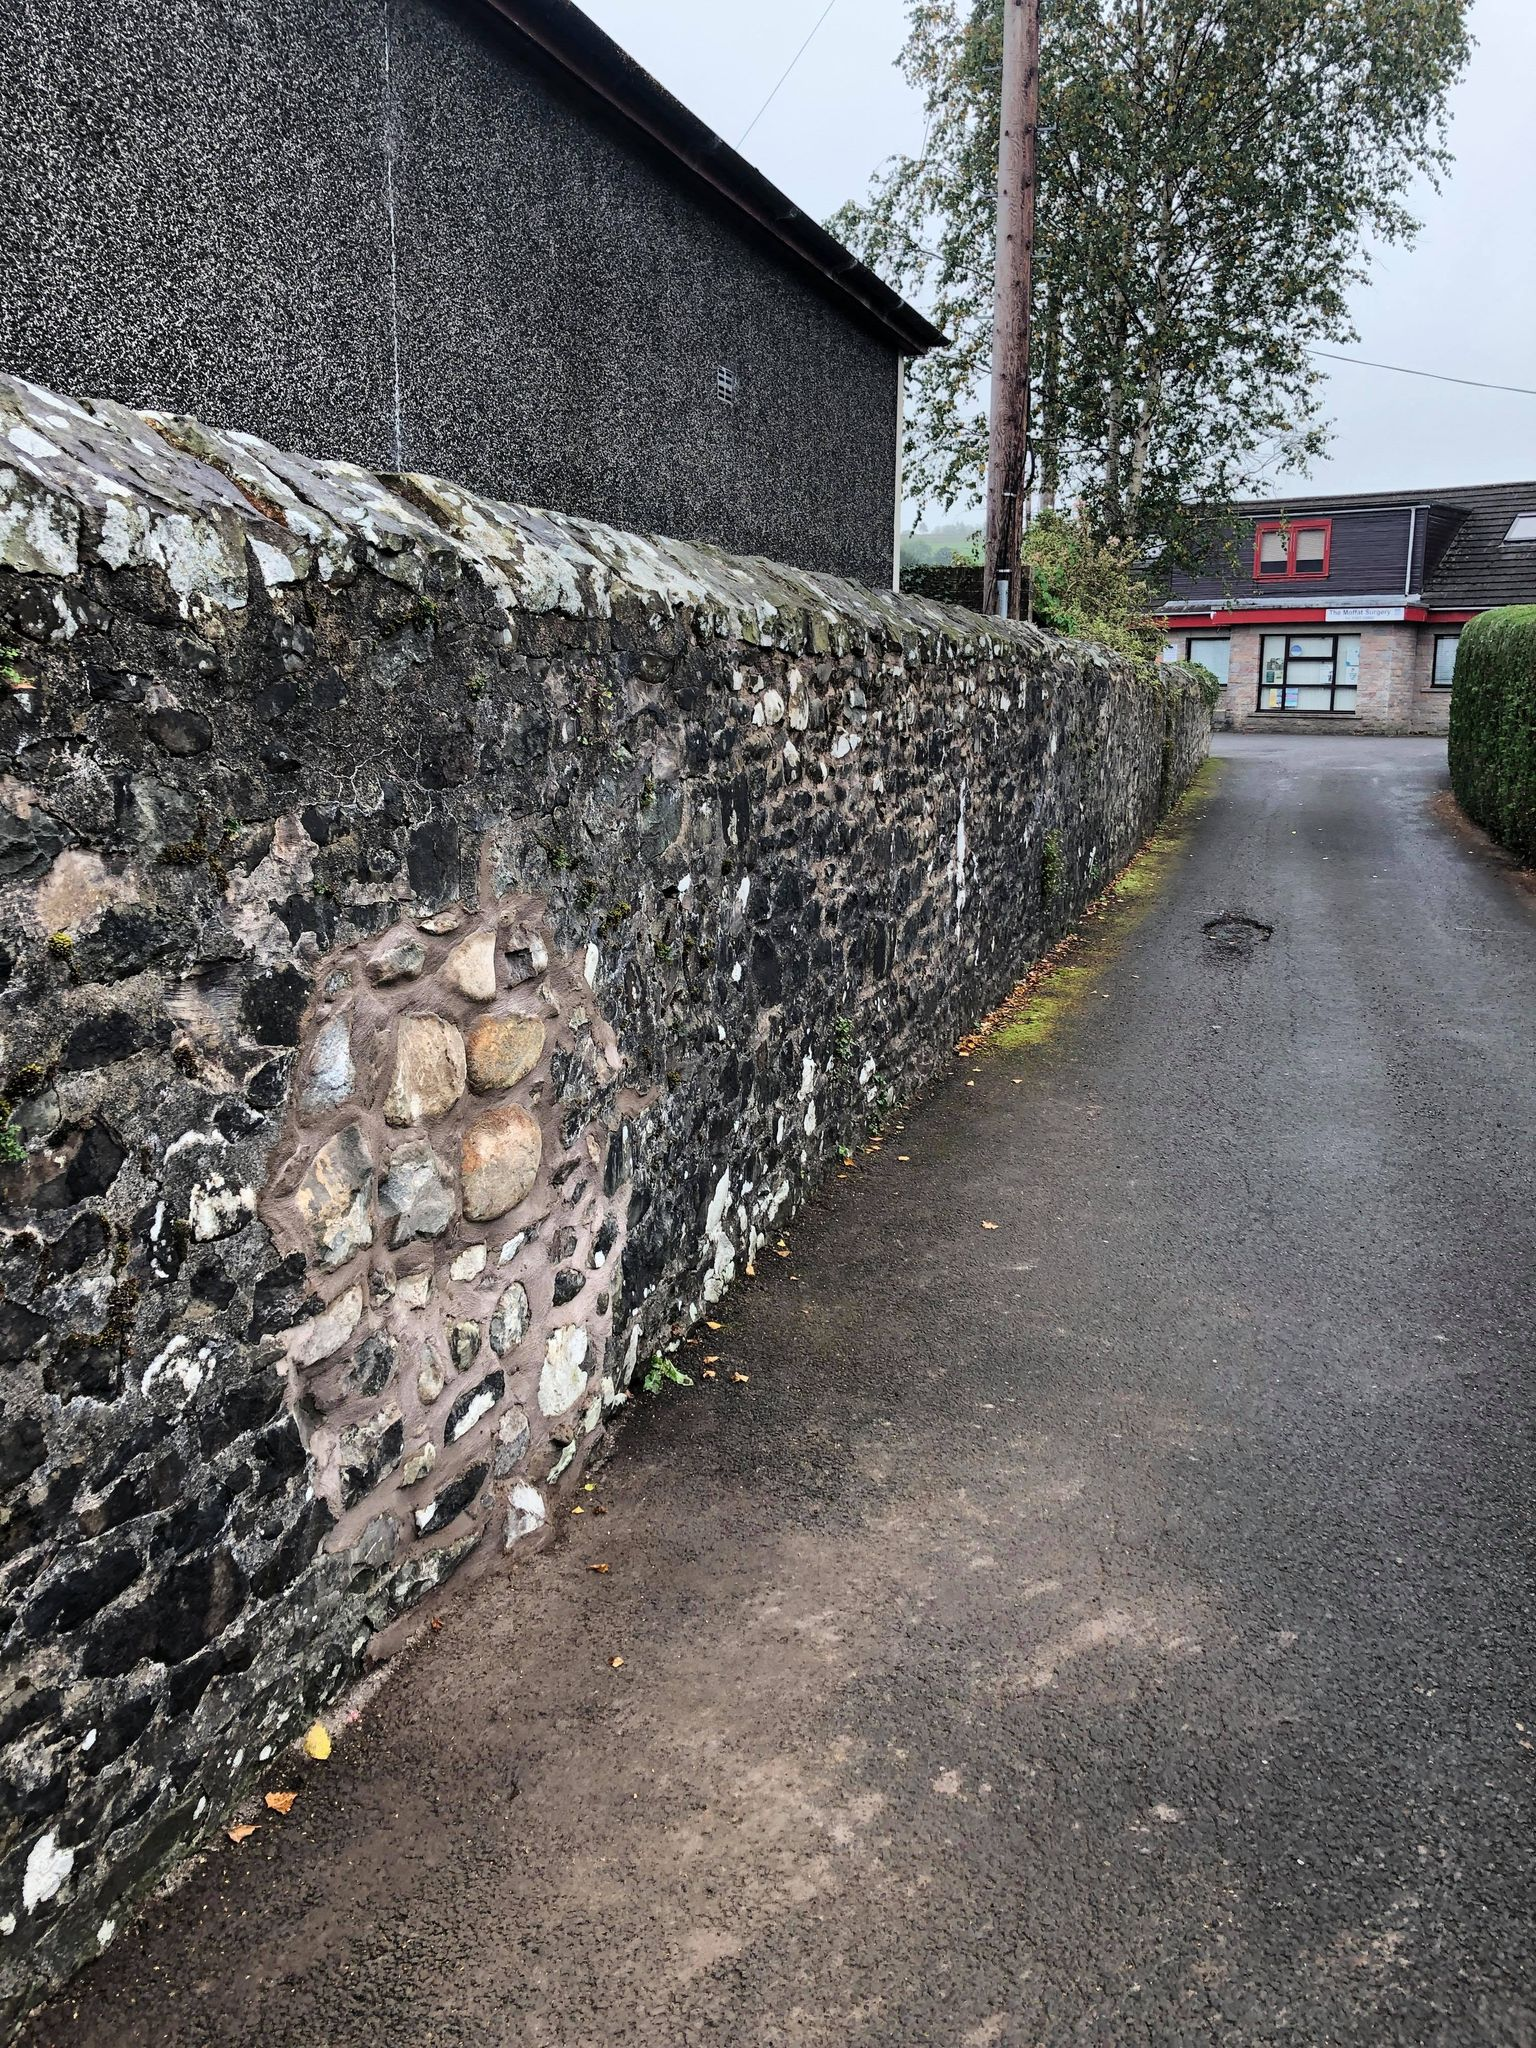 Historic wall was wrongly repaired, says trust